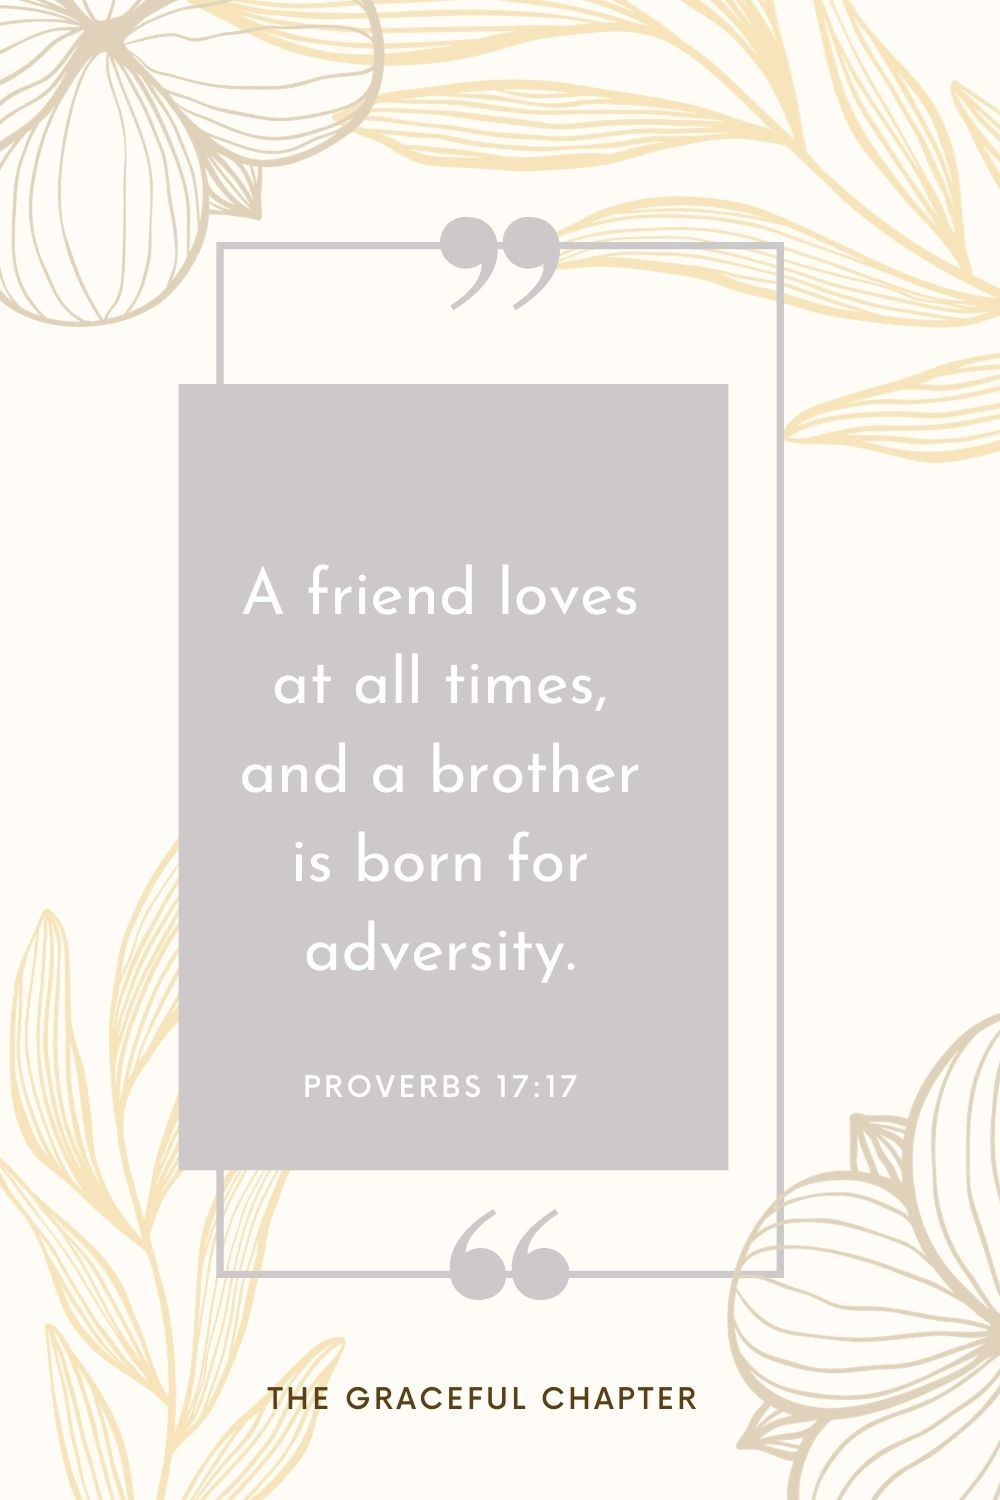 A friend loves at all times, and a brother is born for adversity. Proverbs 17:17